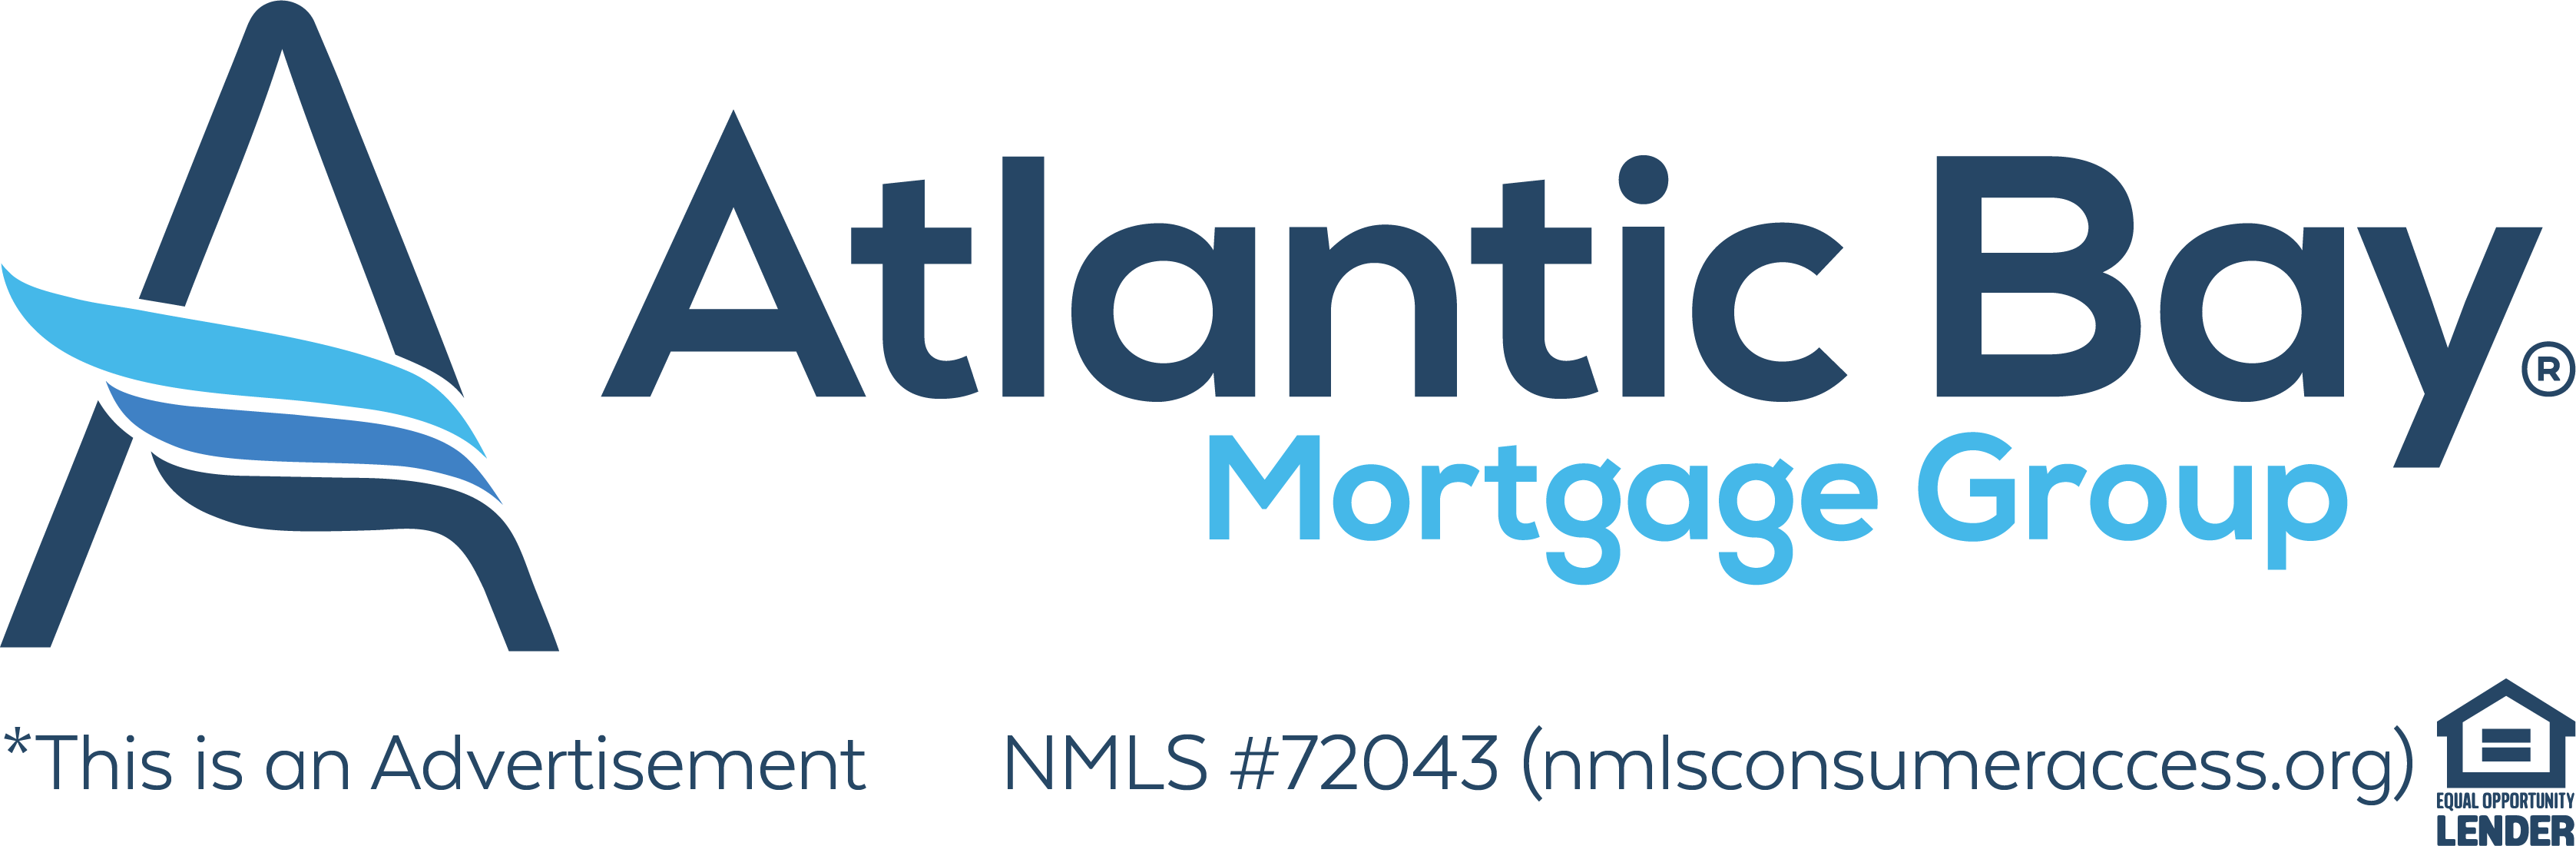 Atlantic Bay Mortgage Group- Bluewater Real Estate's Preferred Lending Partner